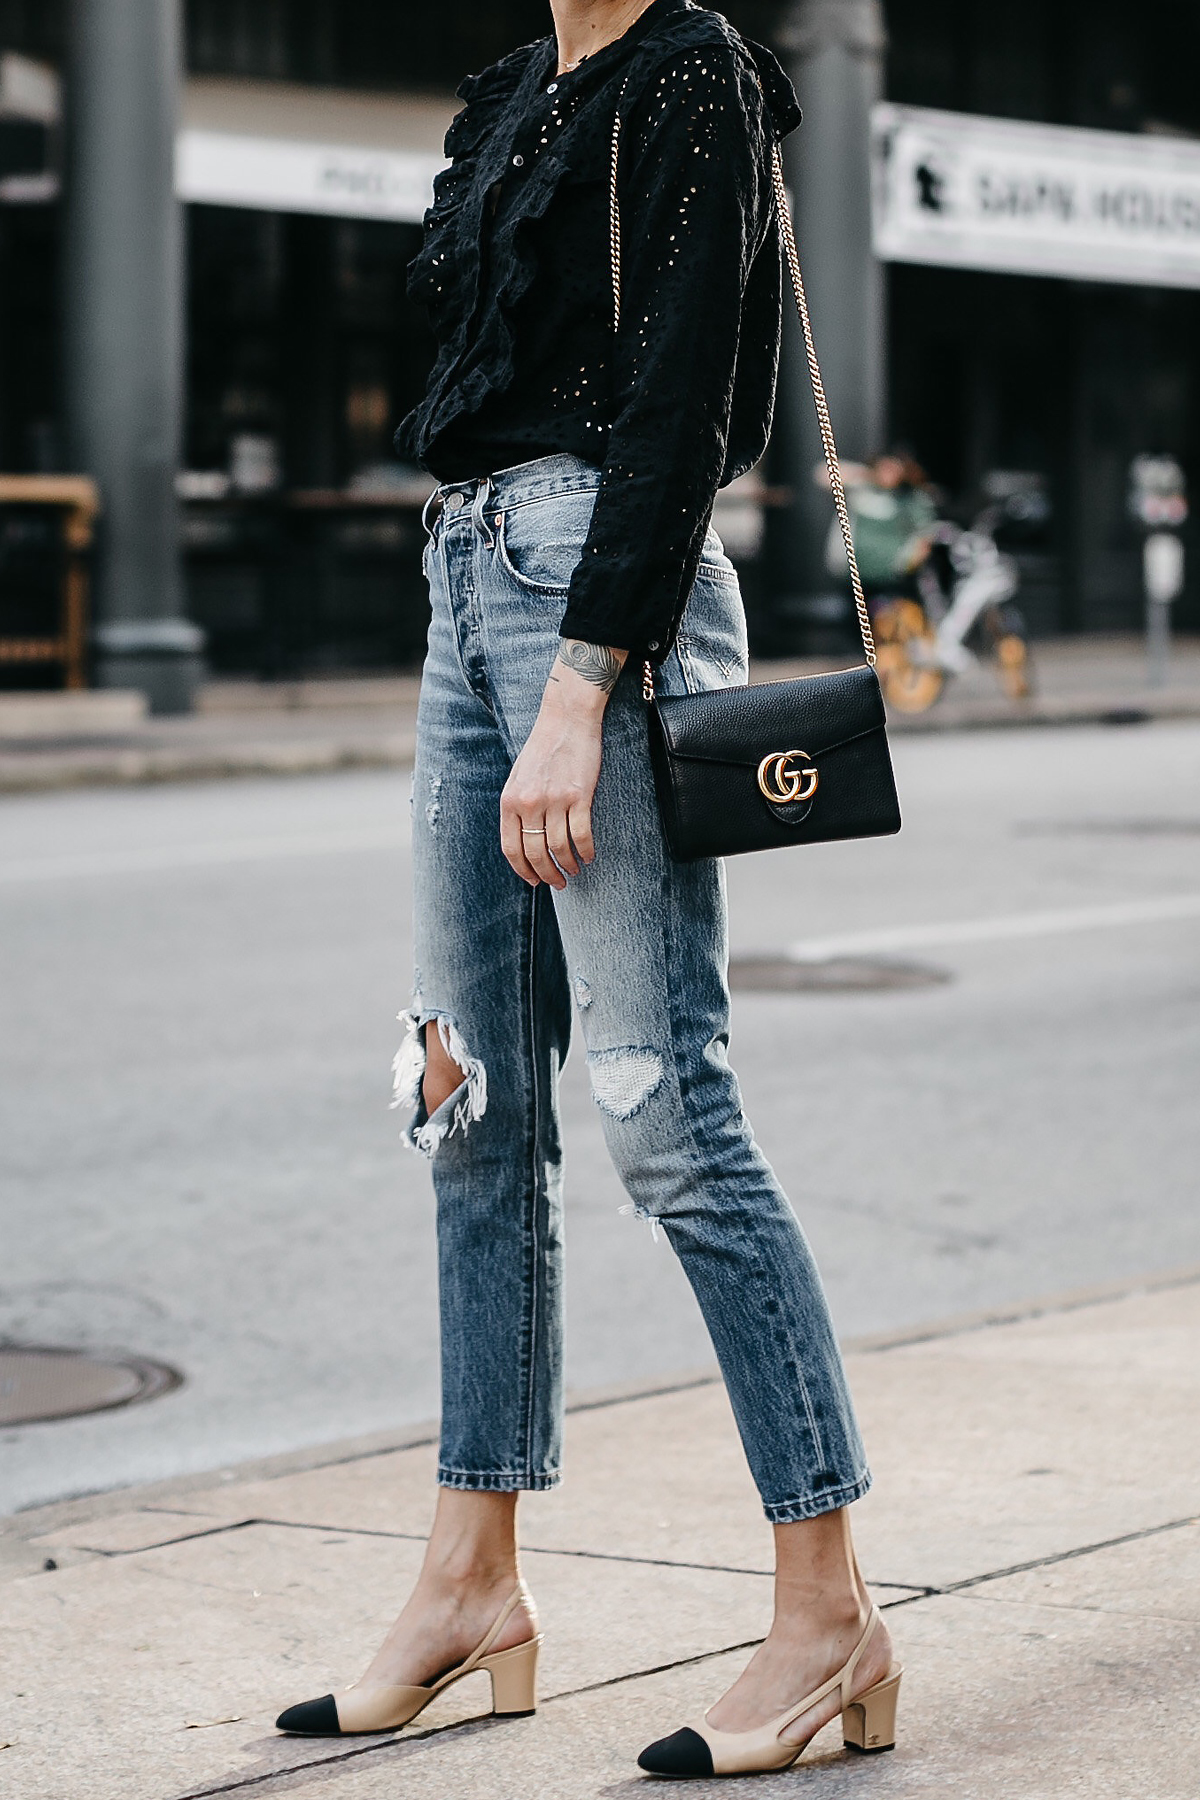 Madewell Black Eyelet Blouse Denim Ripped Skinny Jeans Chanel Slingbacks Gucci Marmont Handbag Fashion Jackson Dallas Blogger Fashion Blogger Street Style